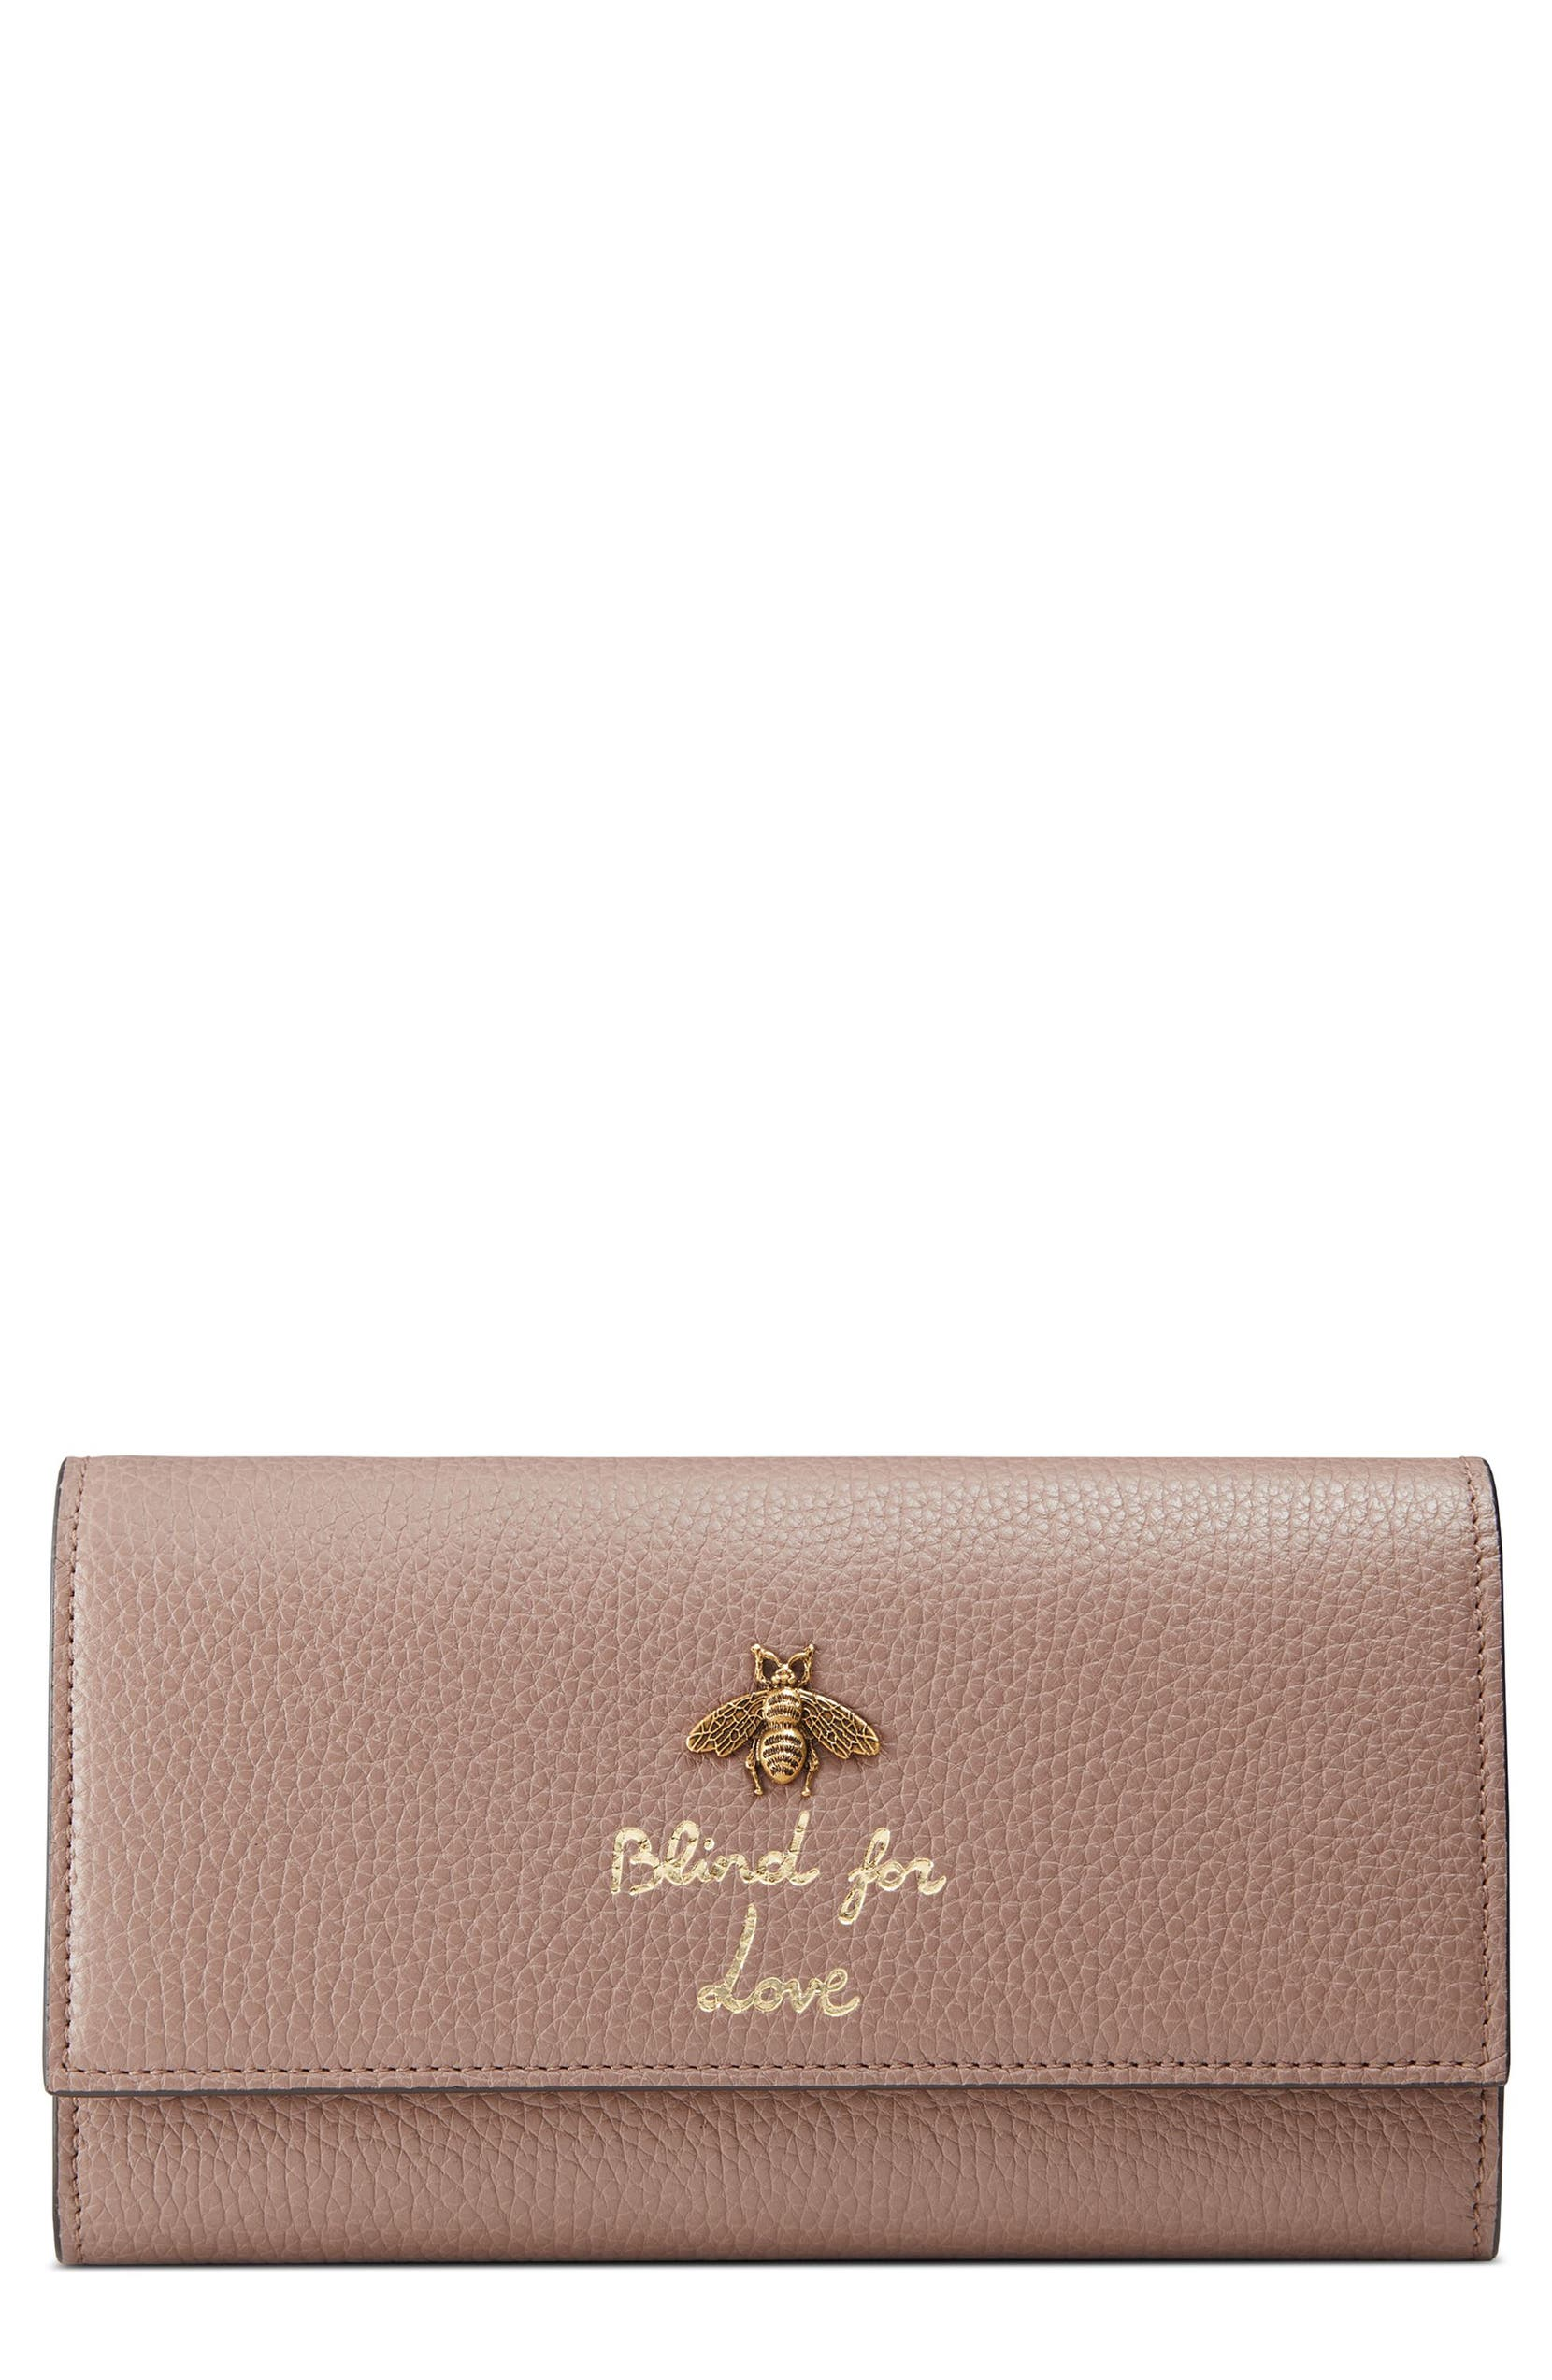 2a74f45d4b89 Gucci Animalier Bee Leather Continental Wallet | Nordstrom